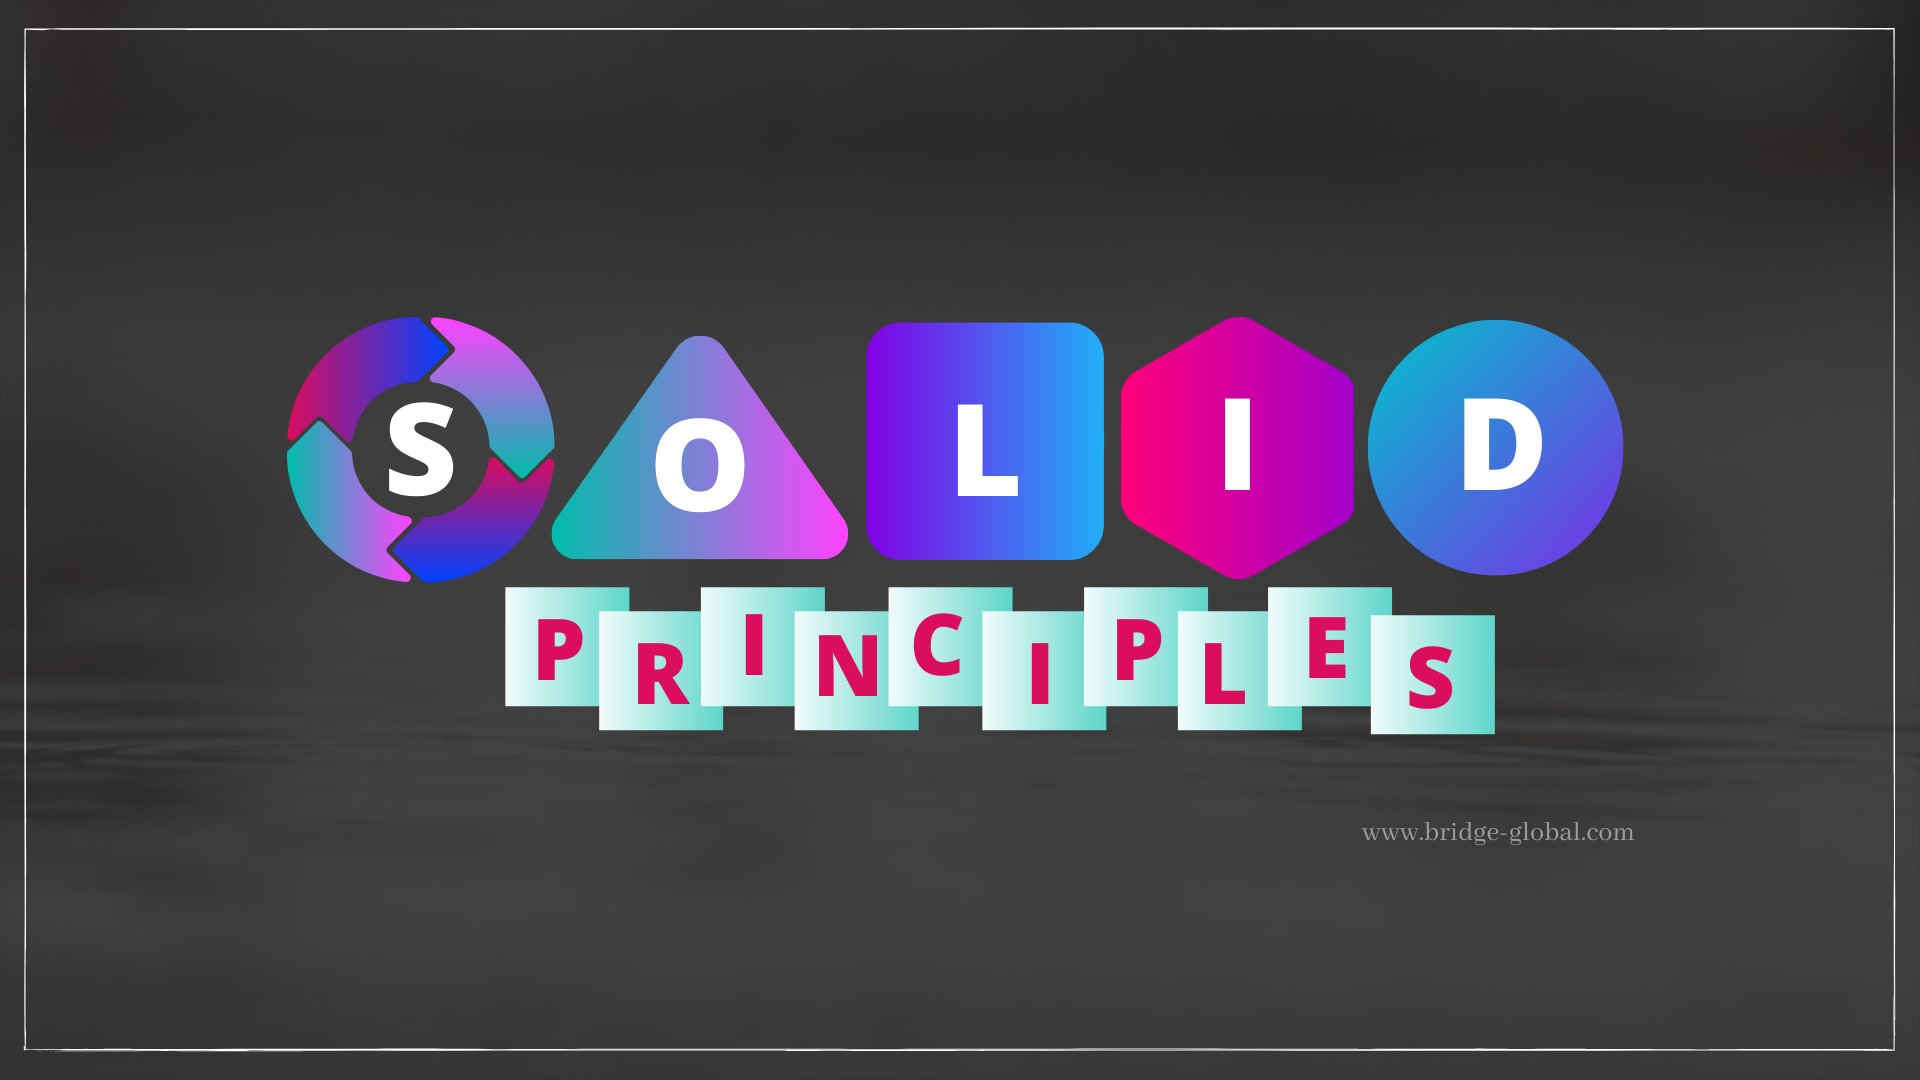 Why Are Solid Principles Vital When Designing Software In The Object Oriented World Bridge Blog By Bridge Global Medium